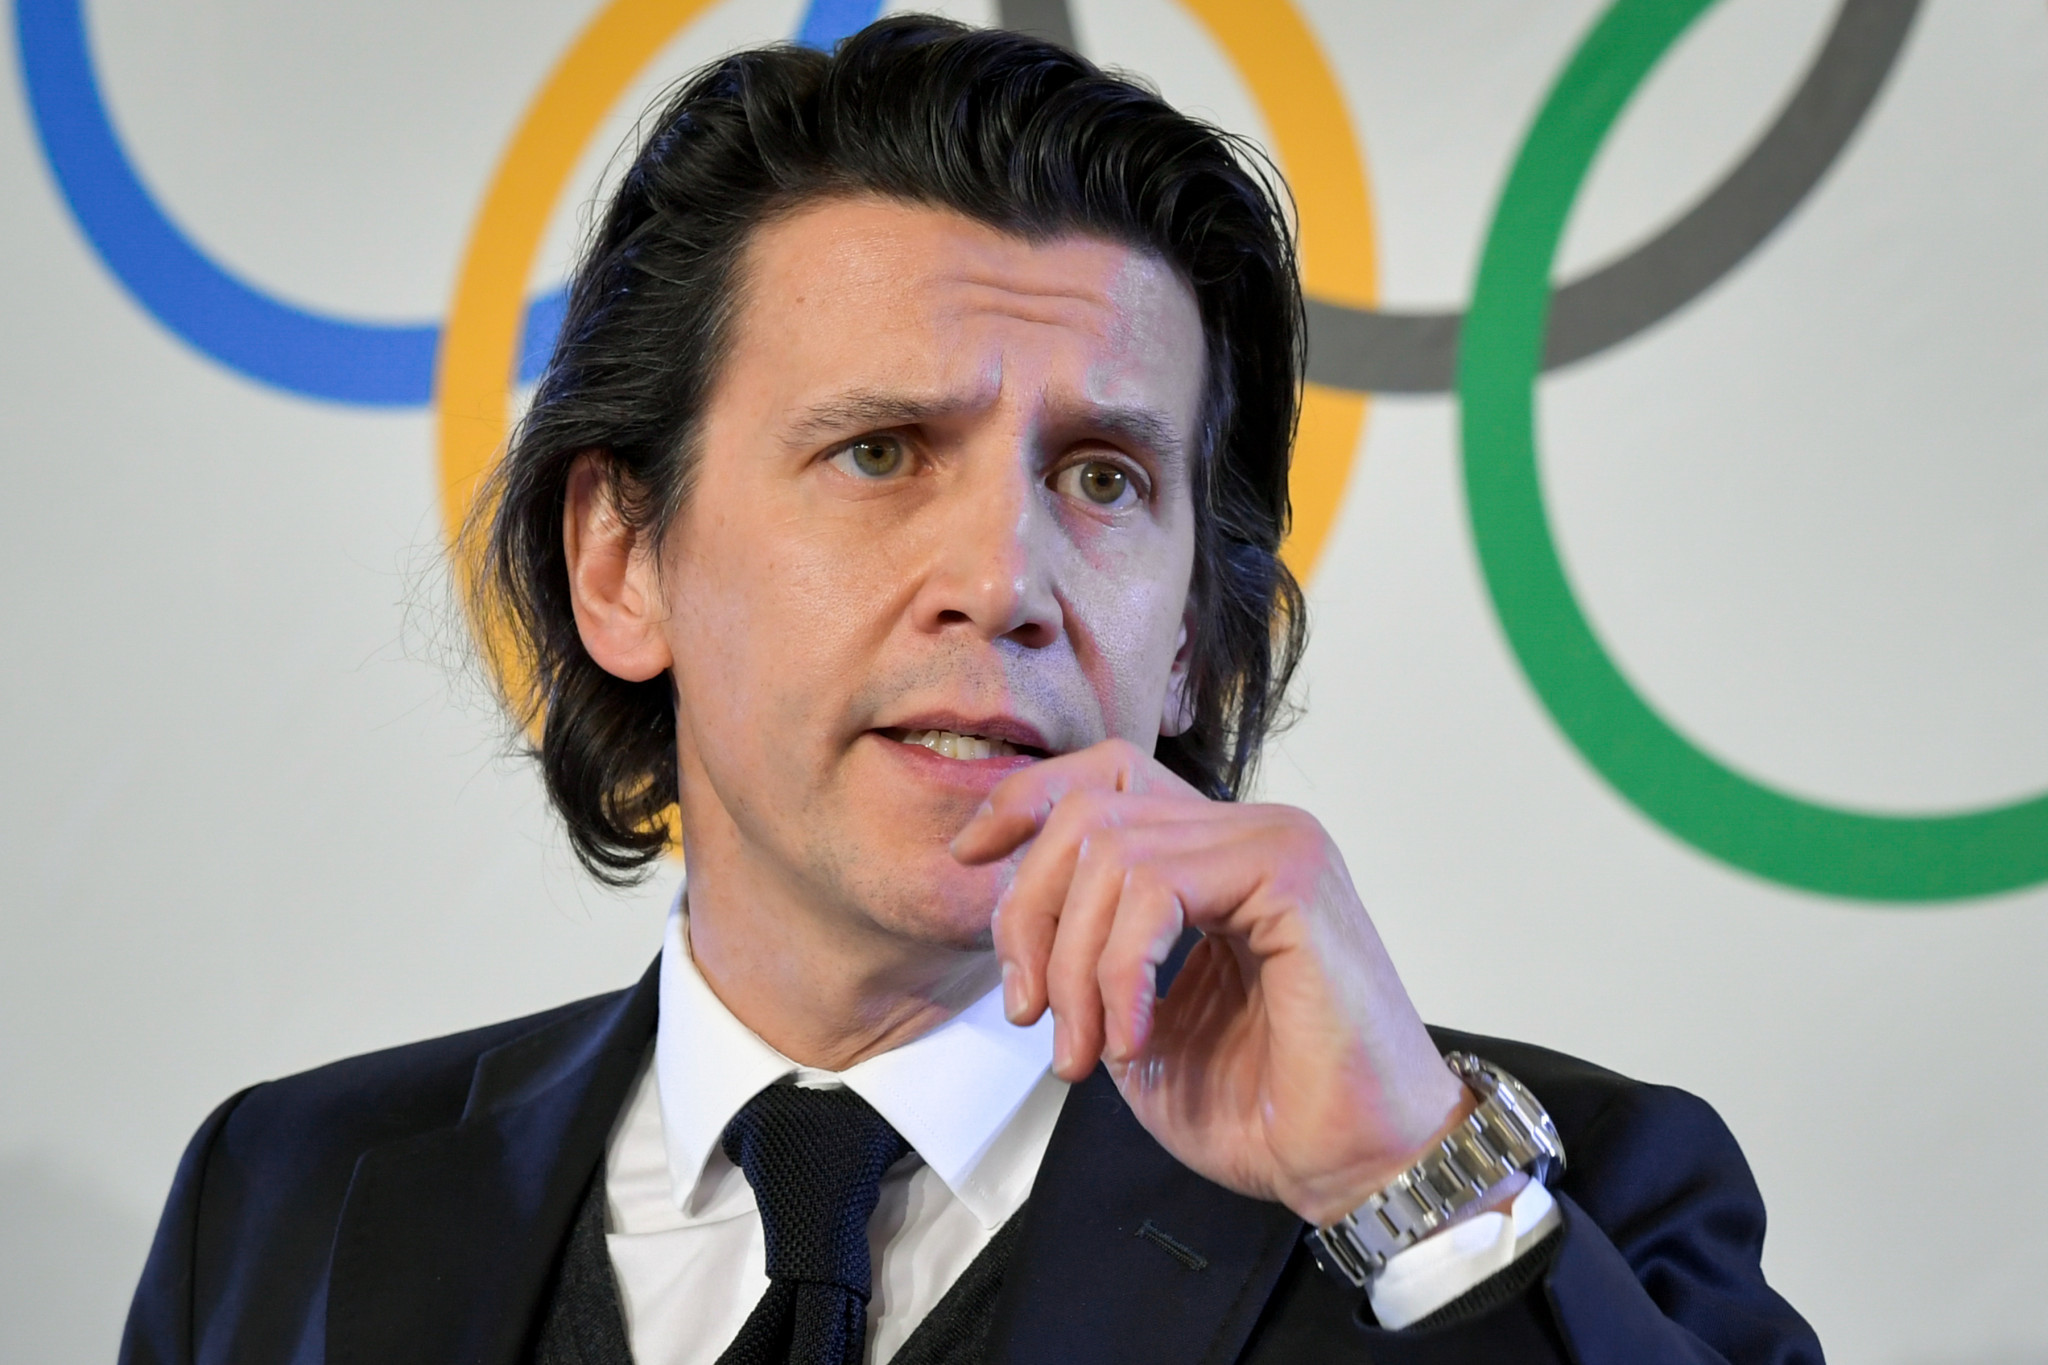 IOC executive director for the Olympic Games Christophe Dubi hailed Tokyo 2020's planning but that an ability to act quickly and effectively will be required at the Games ©Getty Images